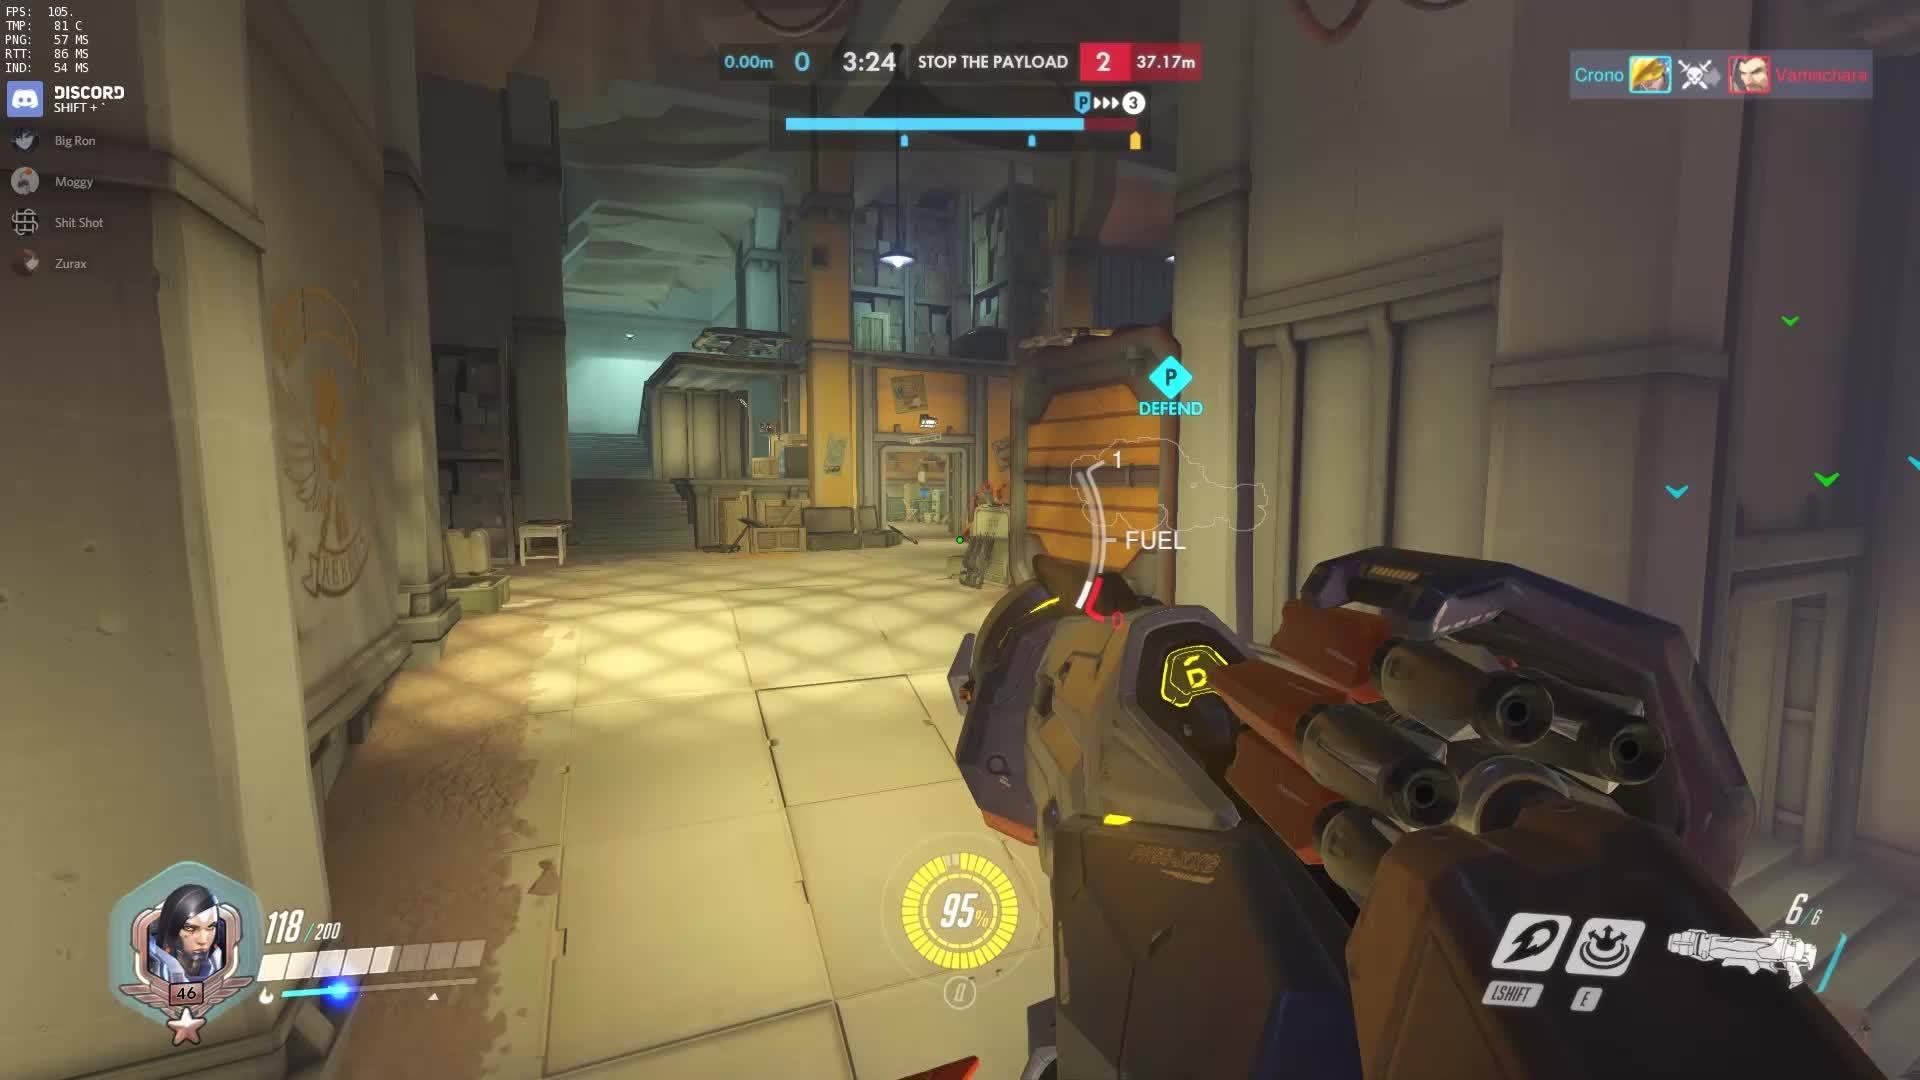 Pharah Play of the Game